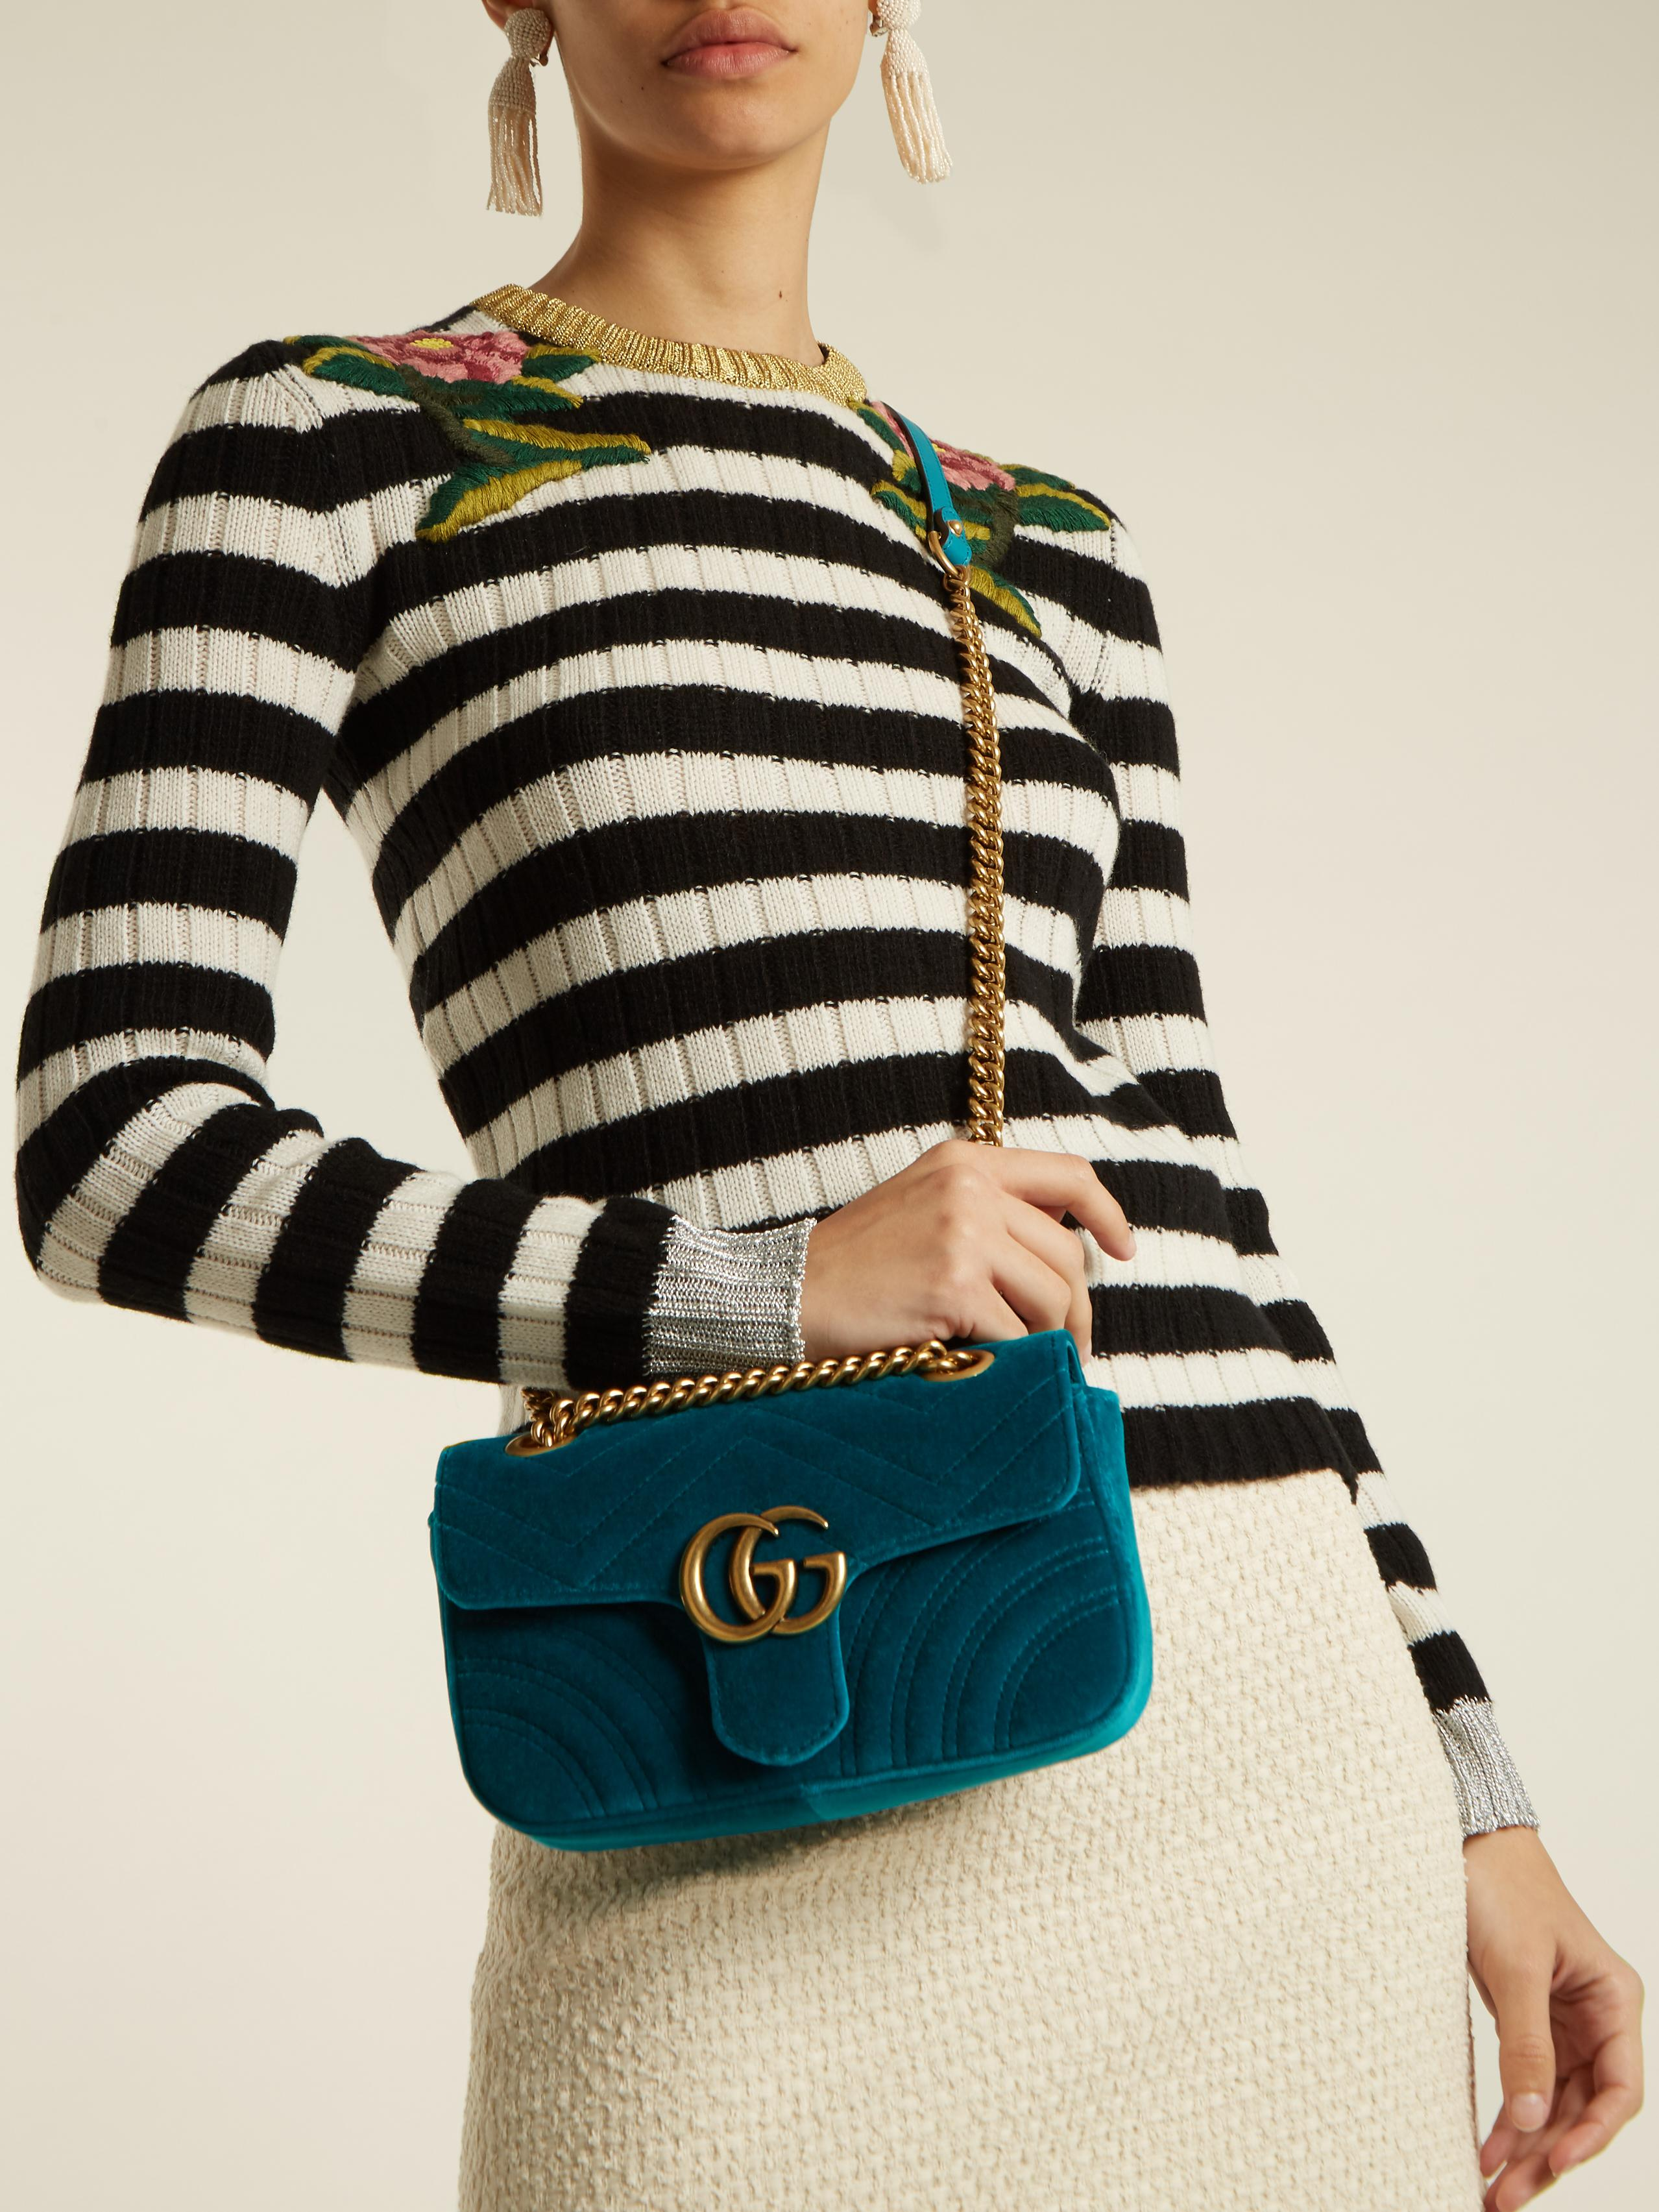 634283c9c05a Gucci Gg Marmont Mini Quilted Velvet Cross Body Bag in Blue - Lyst